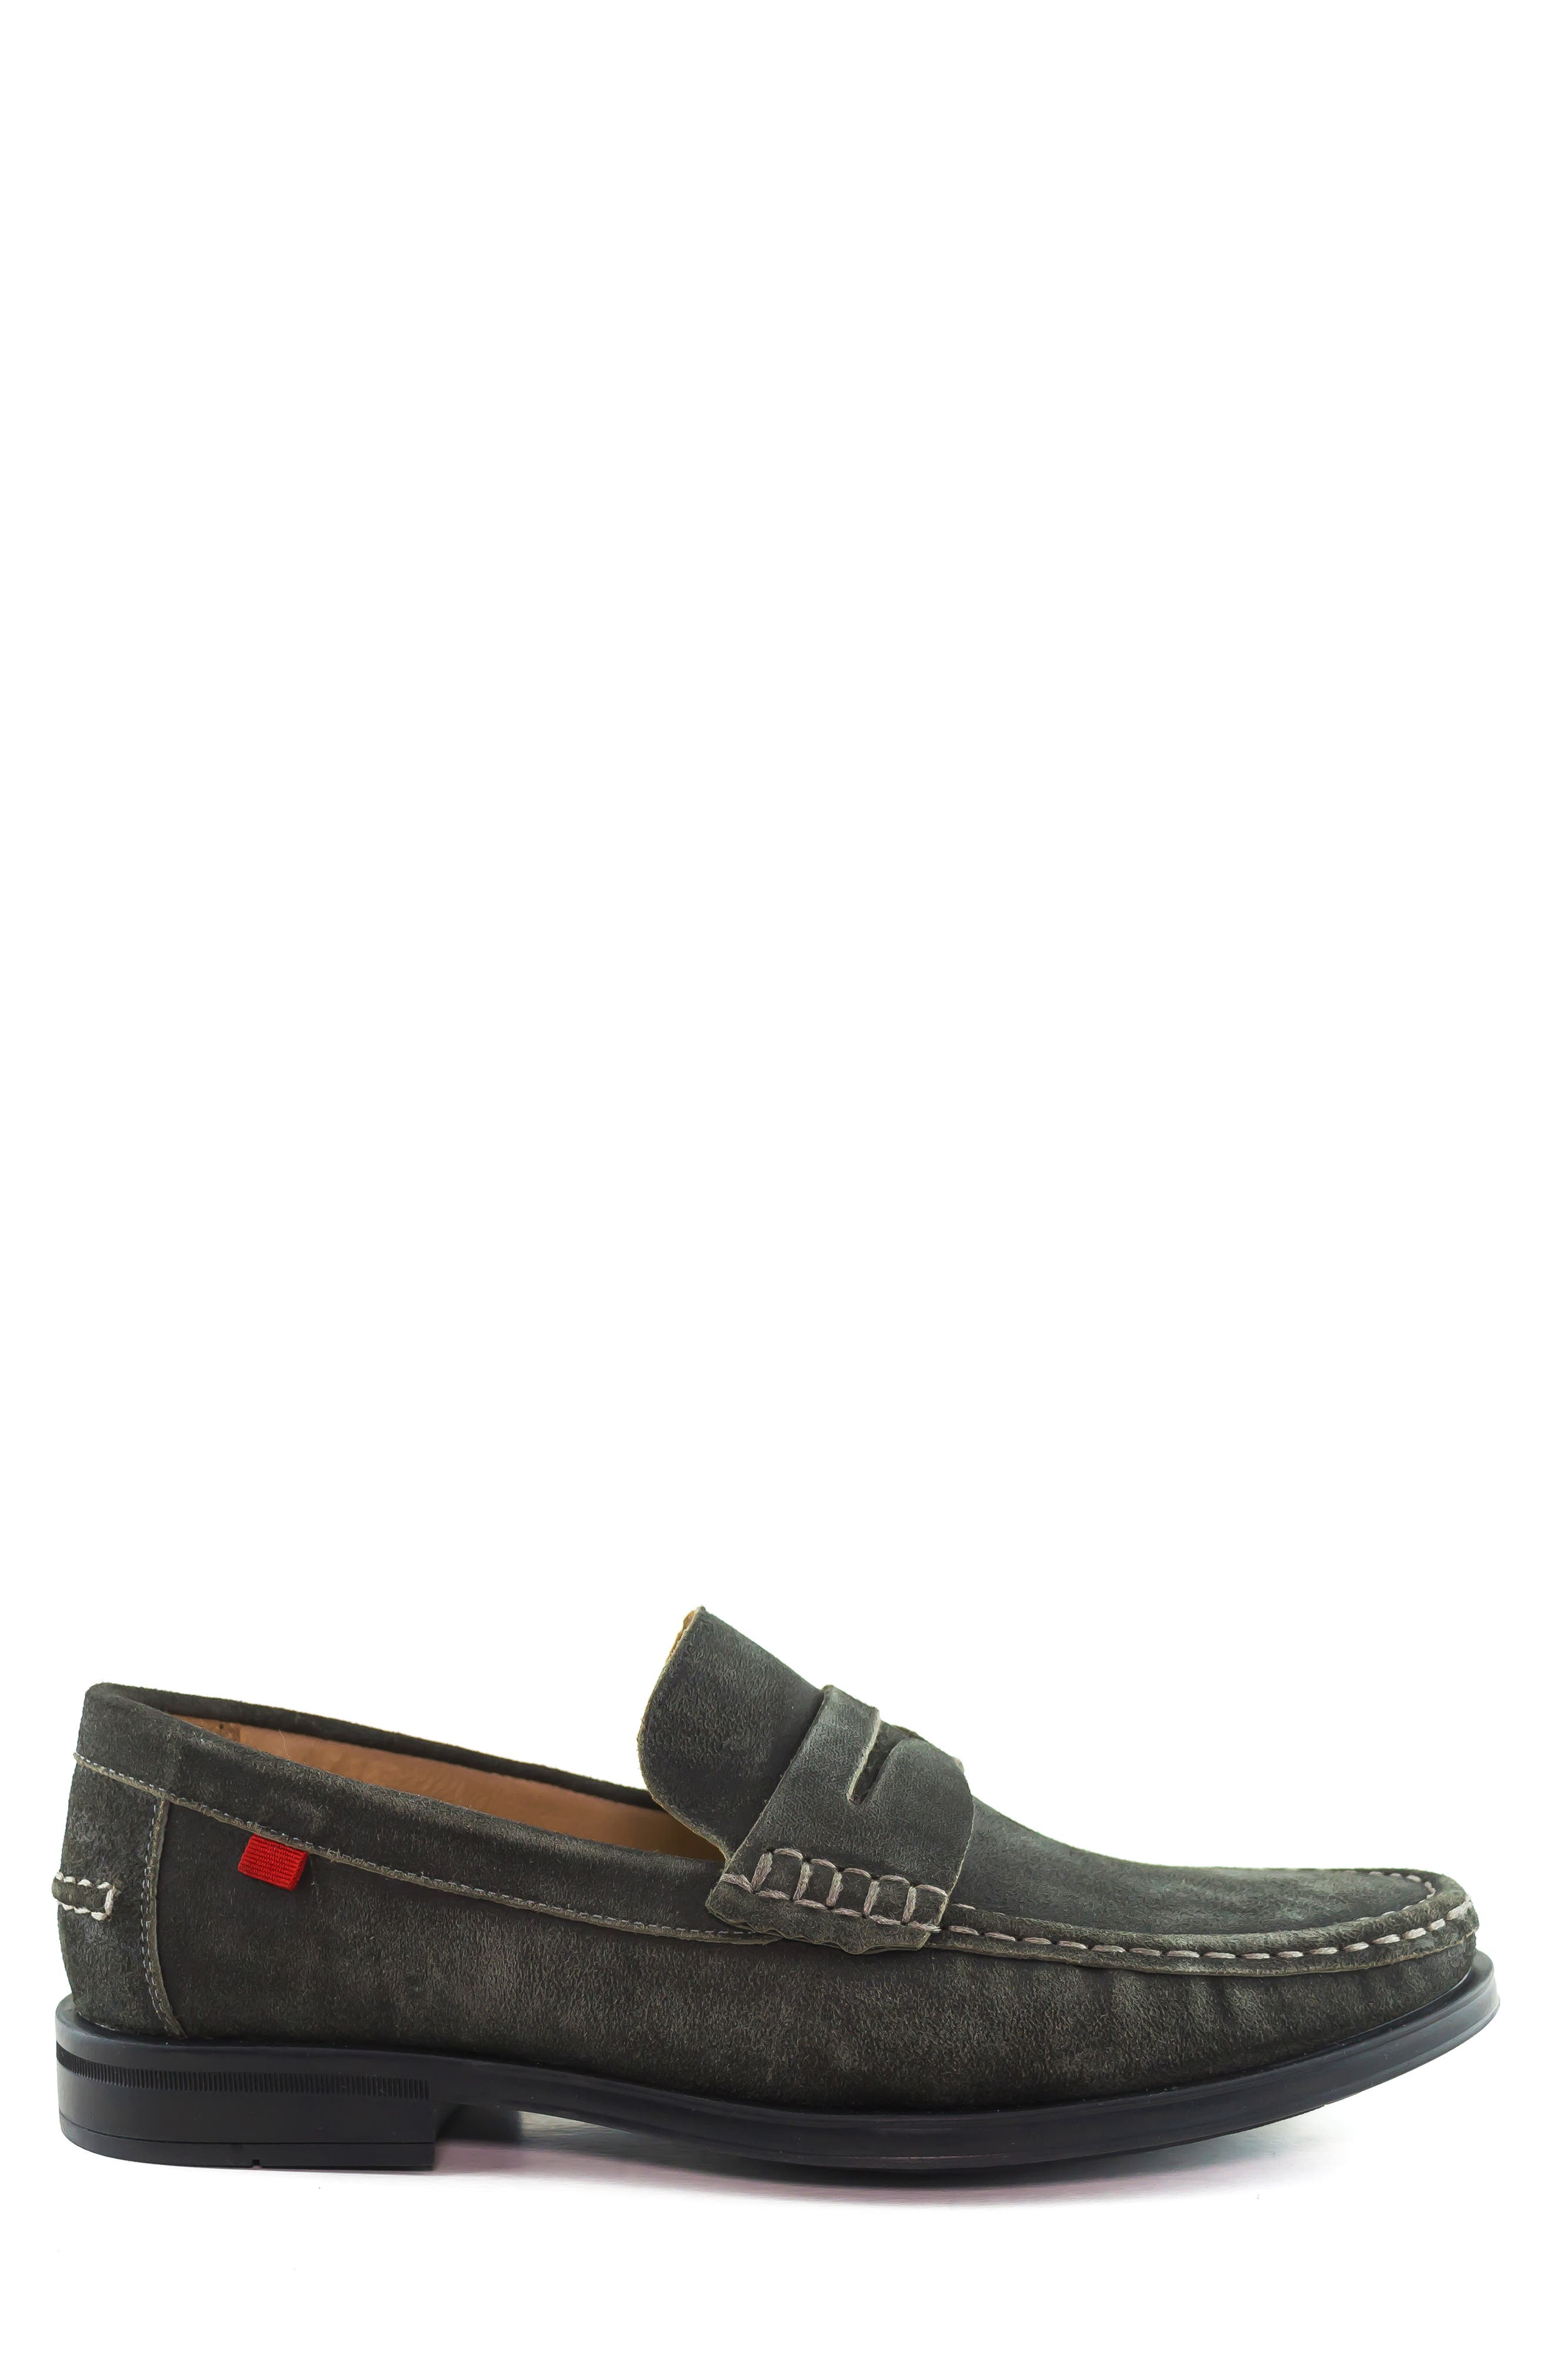 Cortland Penny Loafer,                             Alternate thumbnail 3, color,                             GRAPHITE LEATHER